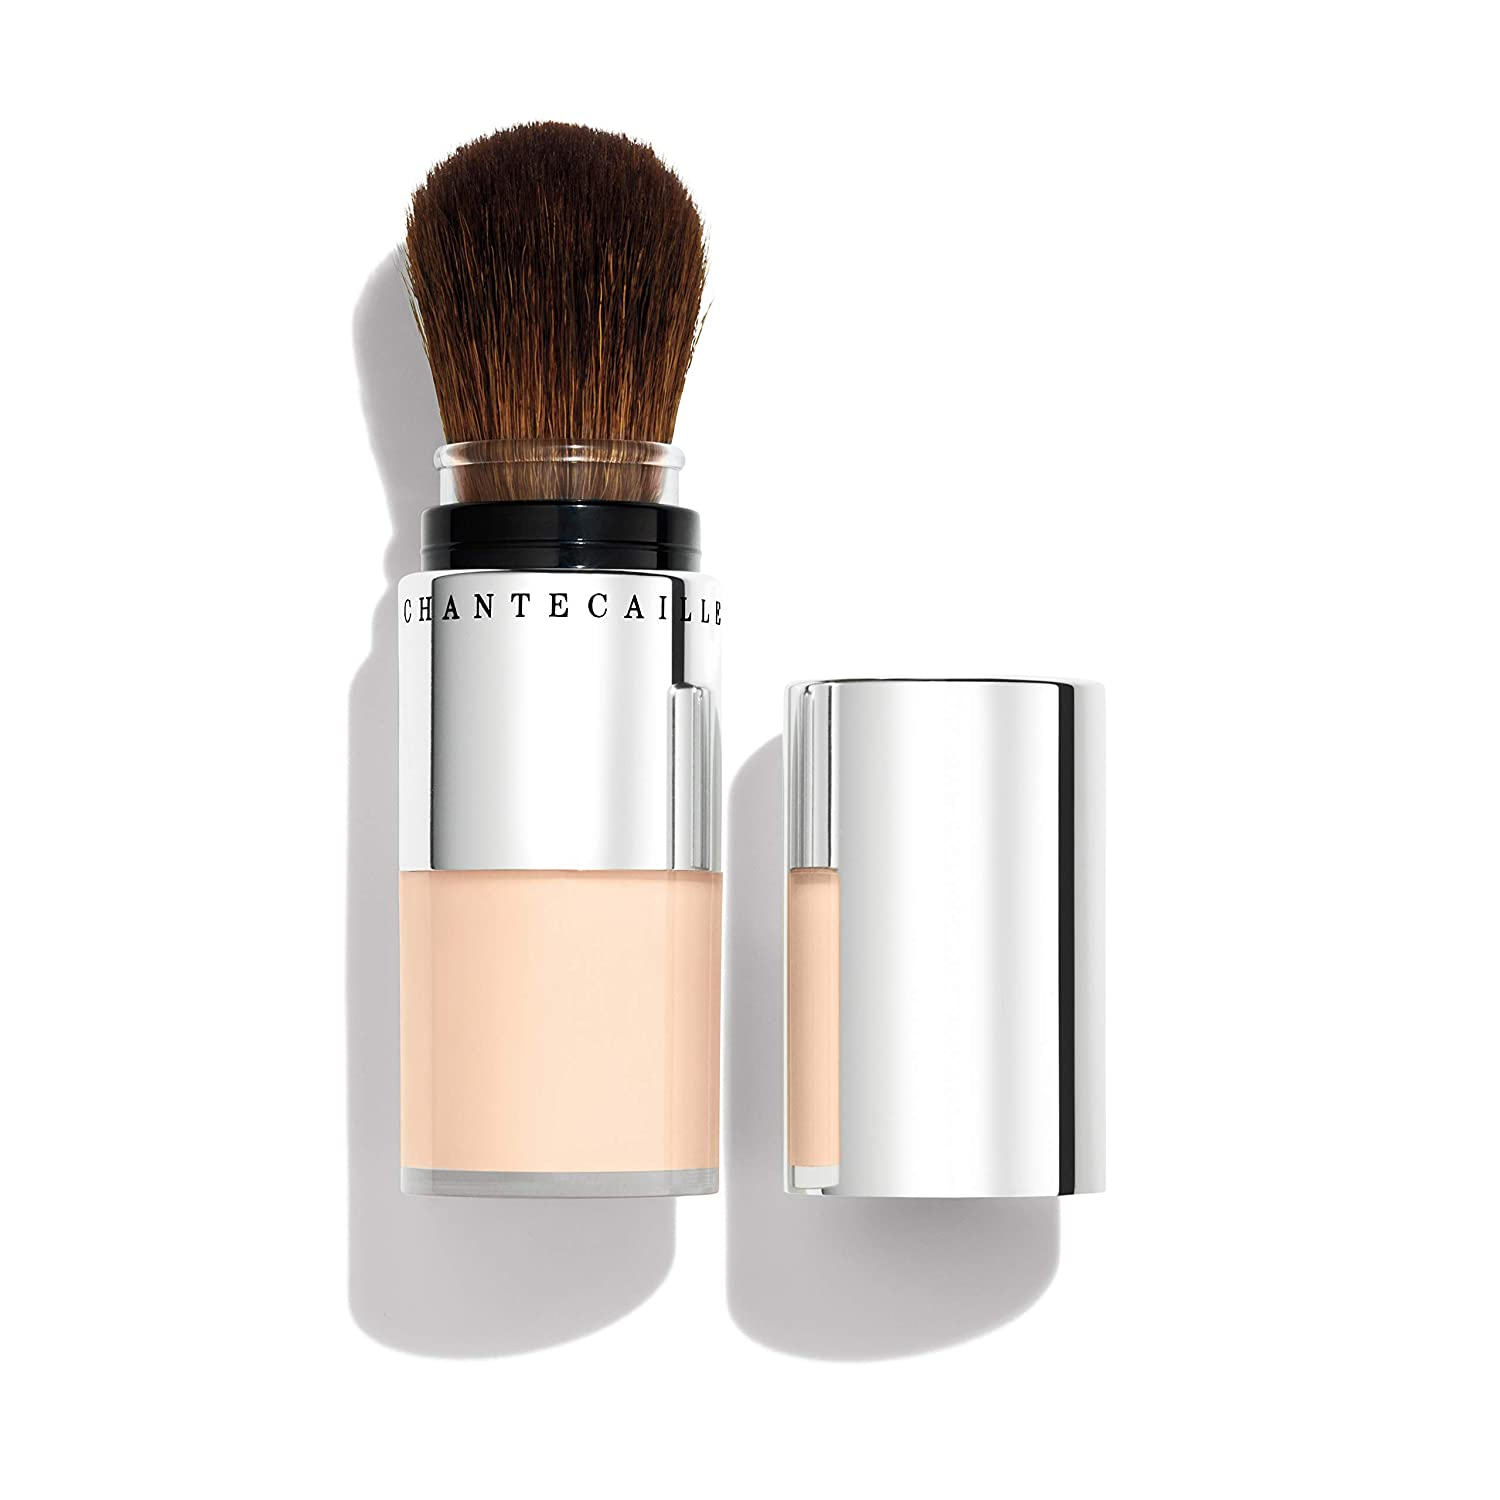 Chantecaille HD Perfecting Loose Powder, Candlelight 71Cfe2BsYfQL._SL1500_